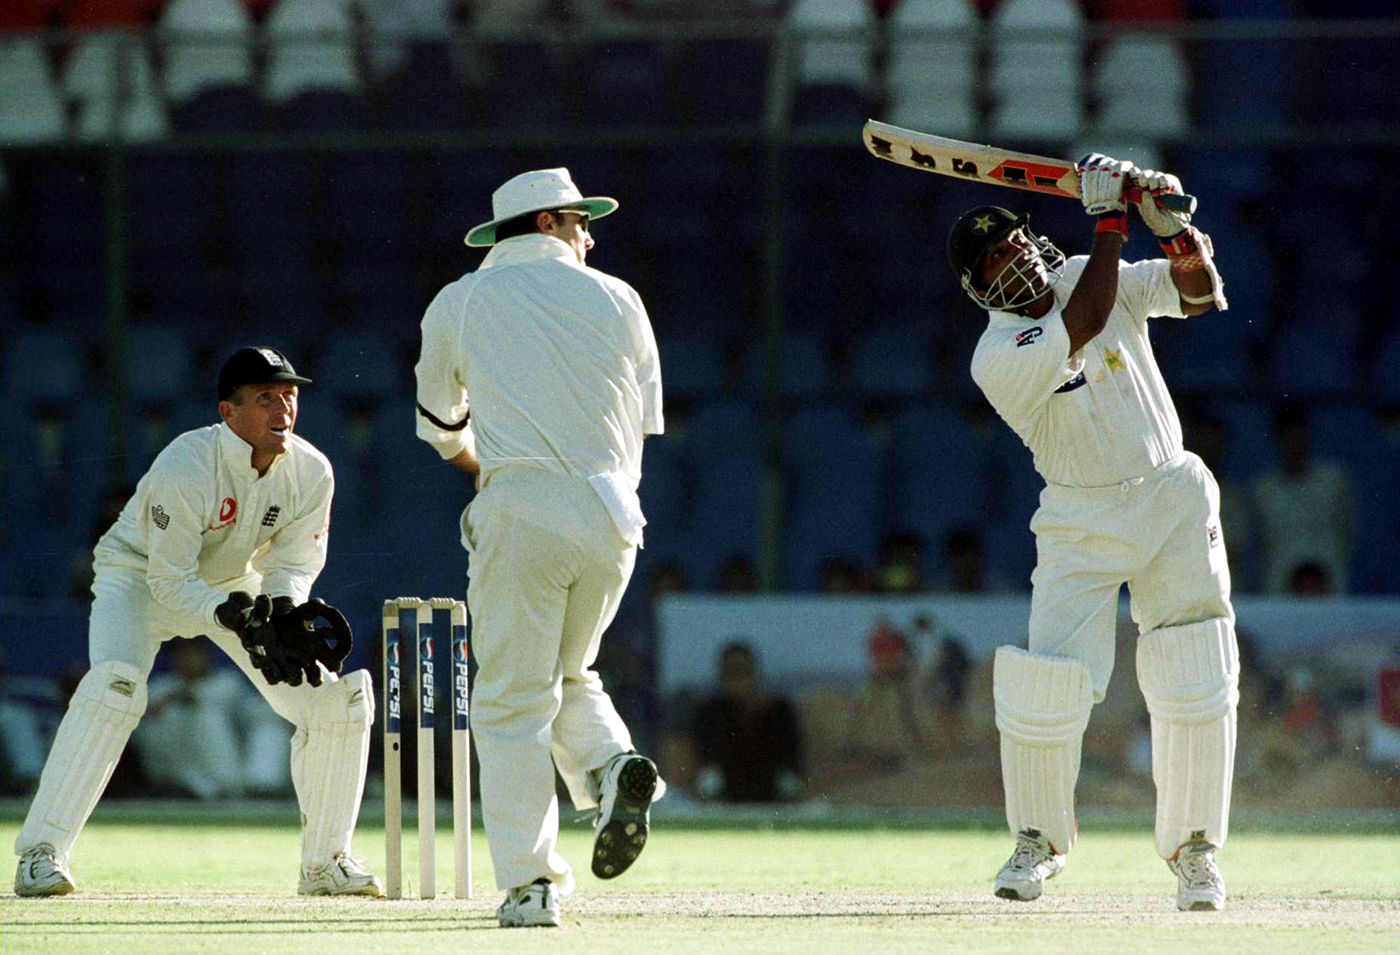 In his first series against England, Mohammad Yousuf averaged 85.5. Overall, in 24 innings against England, he made 1499 runs, including four hundreds and two doubles